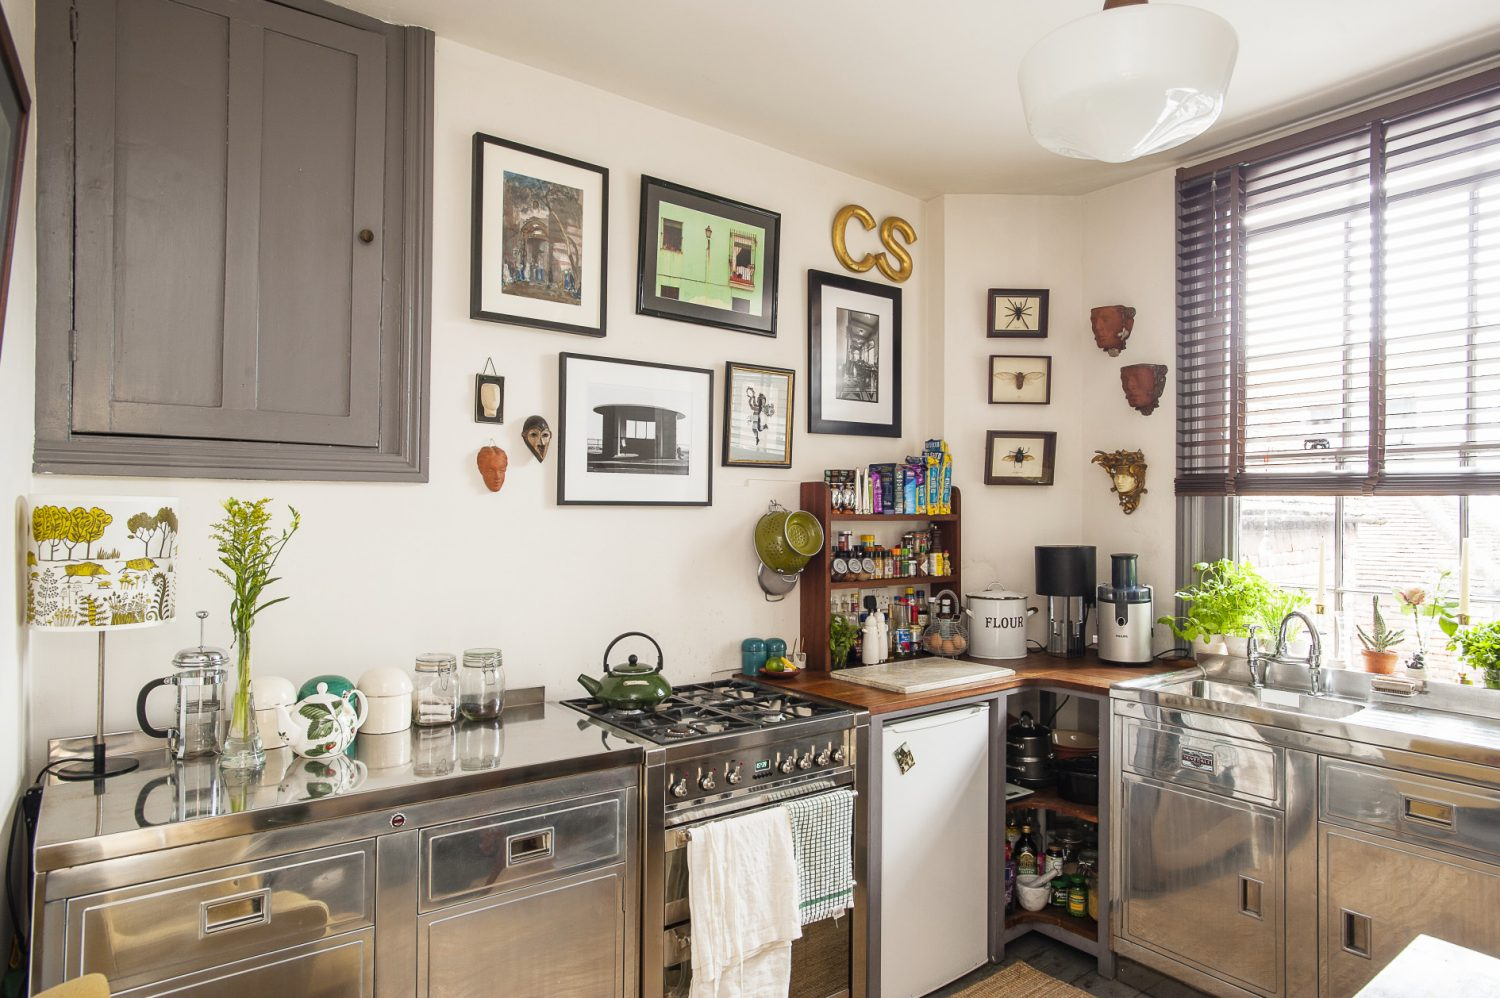 The 1950s Dovedale kitchen cabinets were already stripped of paint, Christine had the steel polished. She bought the Medusa mask and collection of insects at Greenwich Market in the 1980s